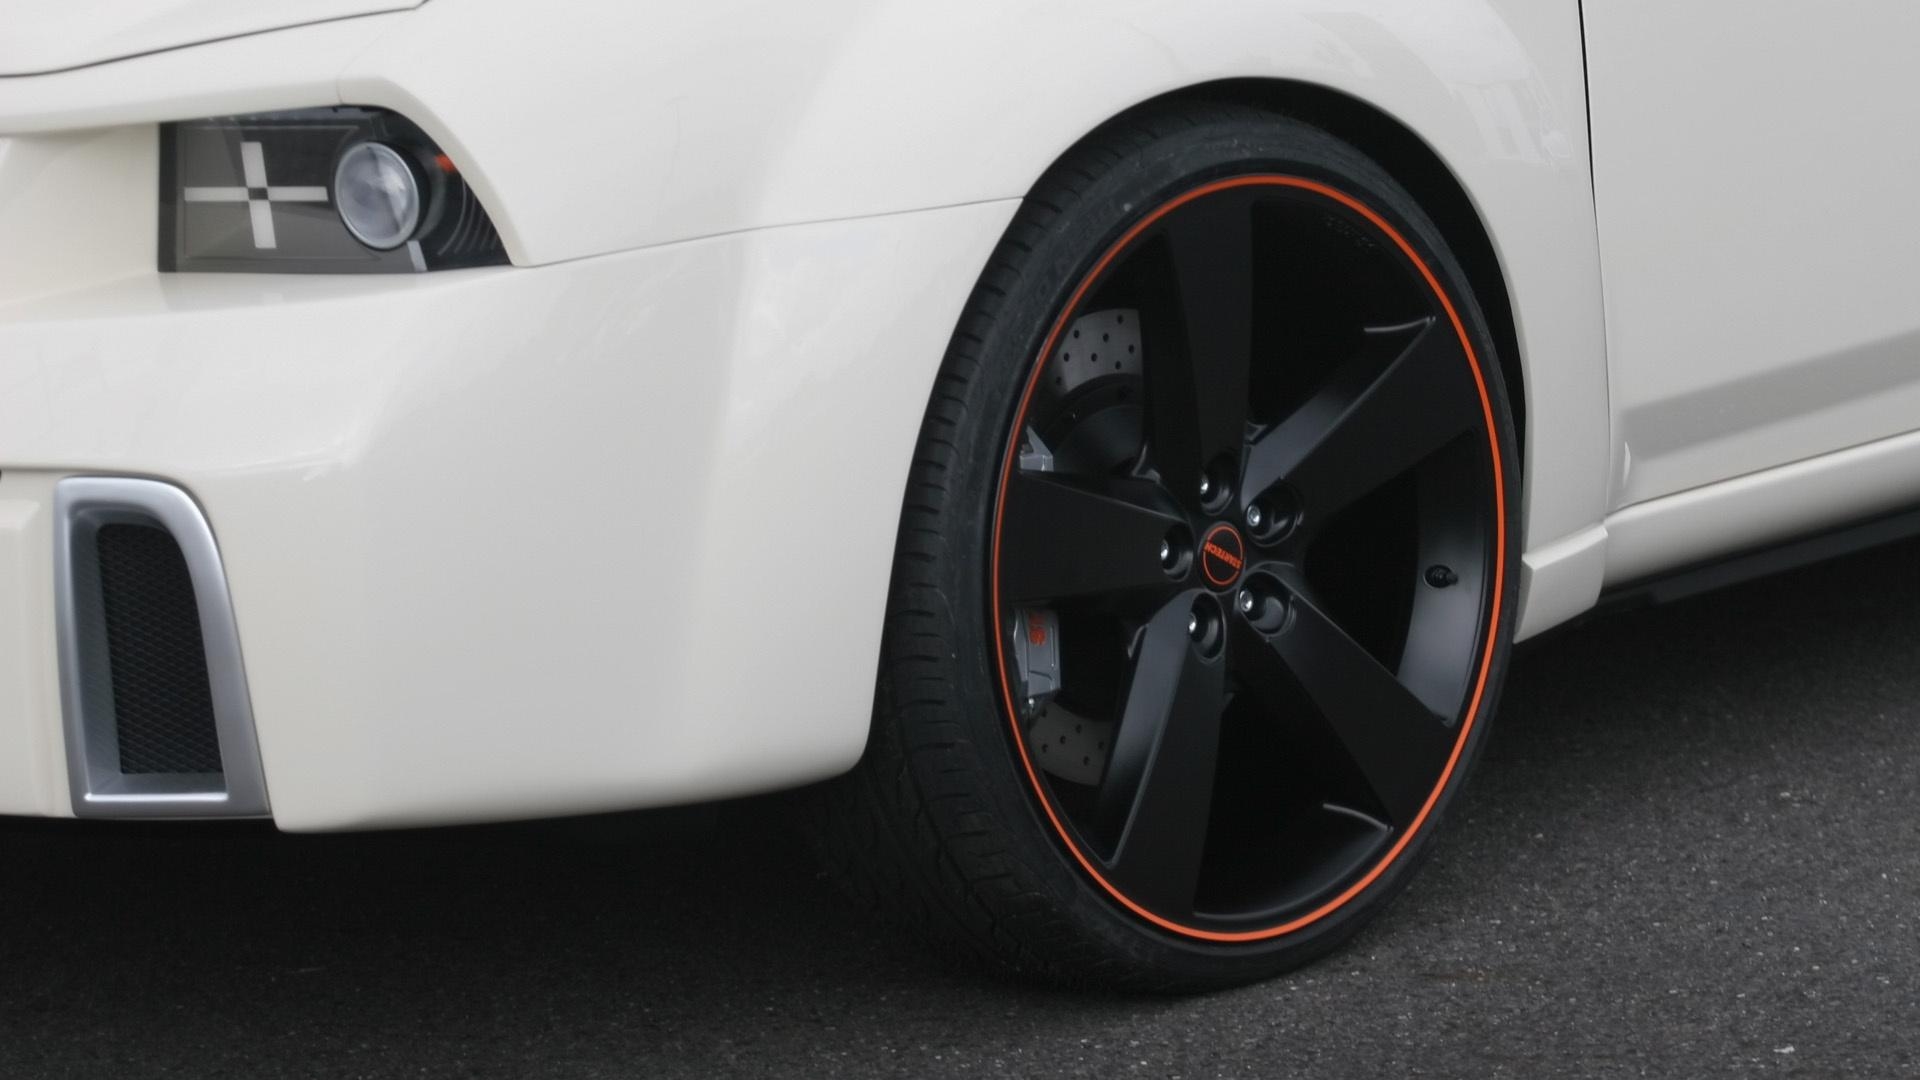 2007 Startech Starster Concept Based On Dodge Avenger Wheel 1920x1080